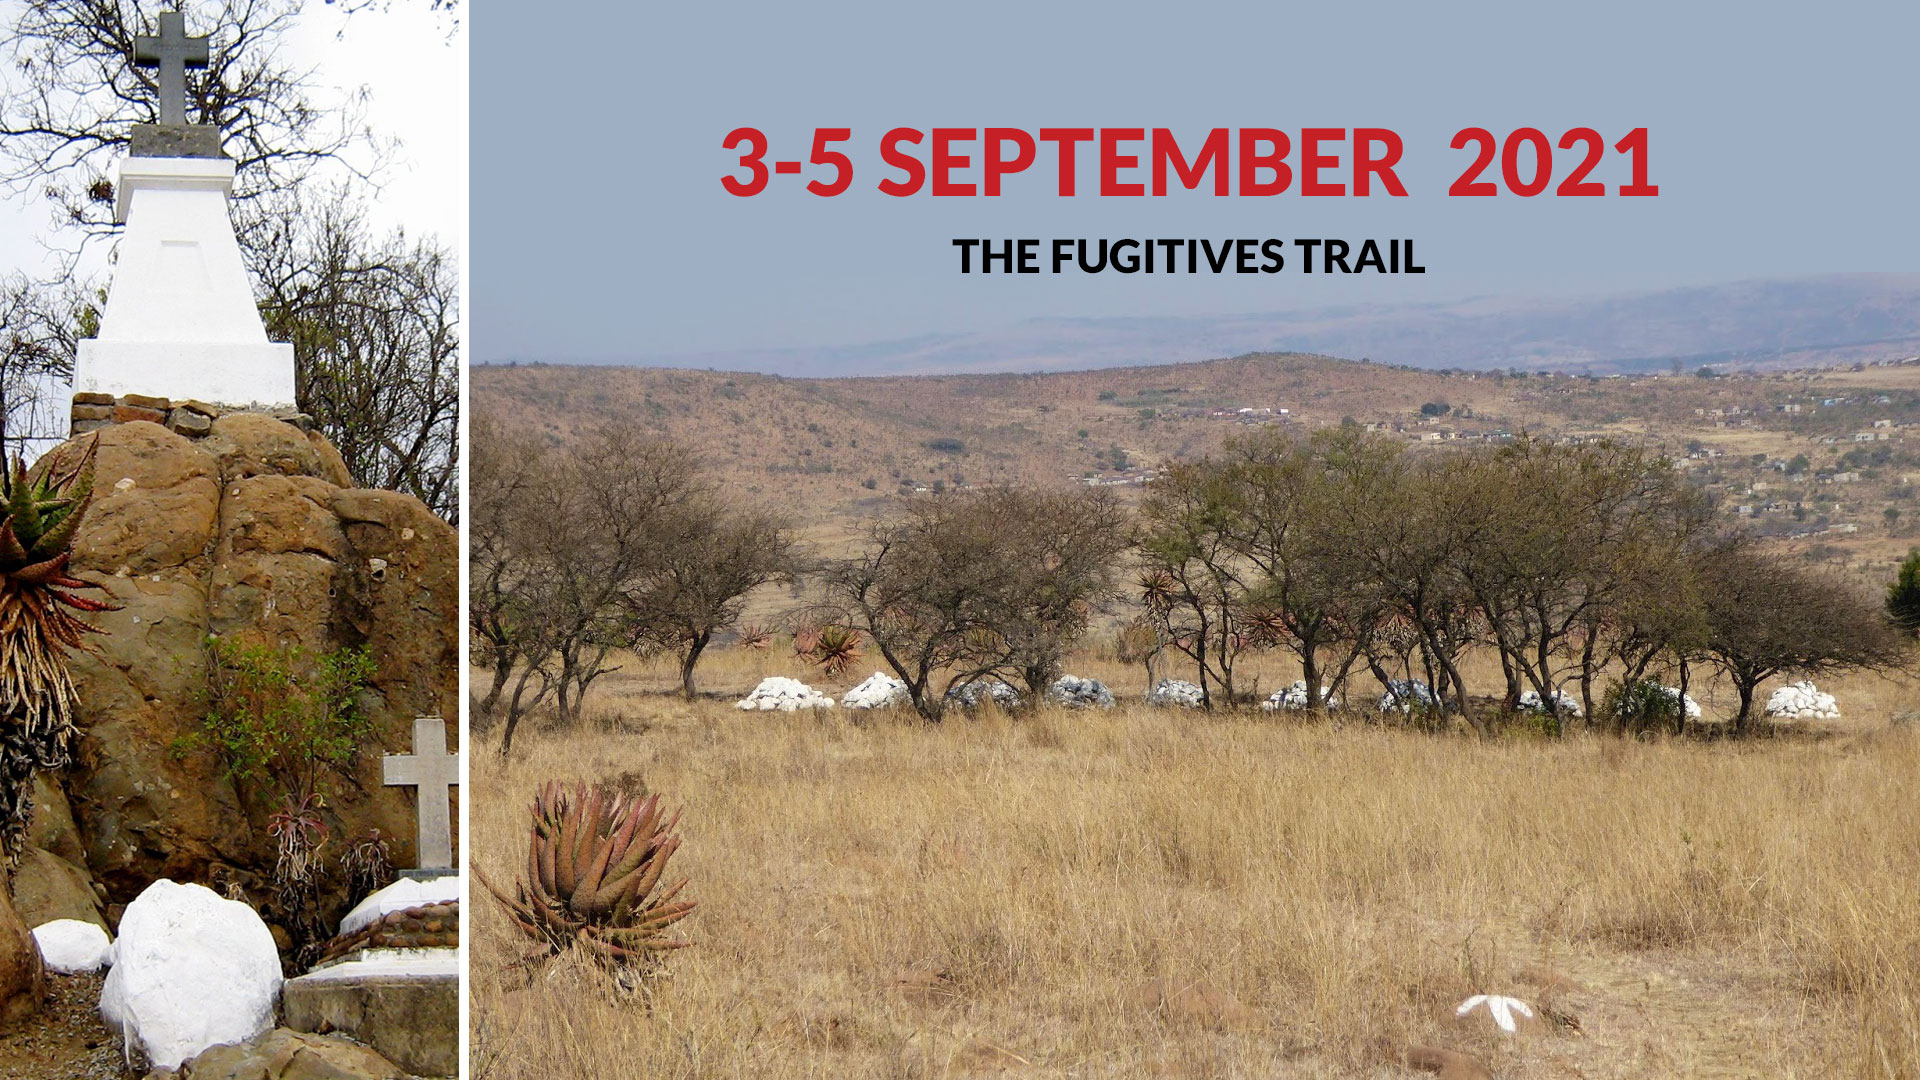 The Fugitives Trail